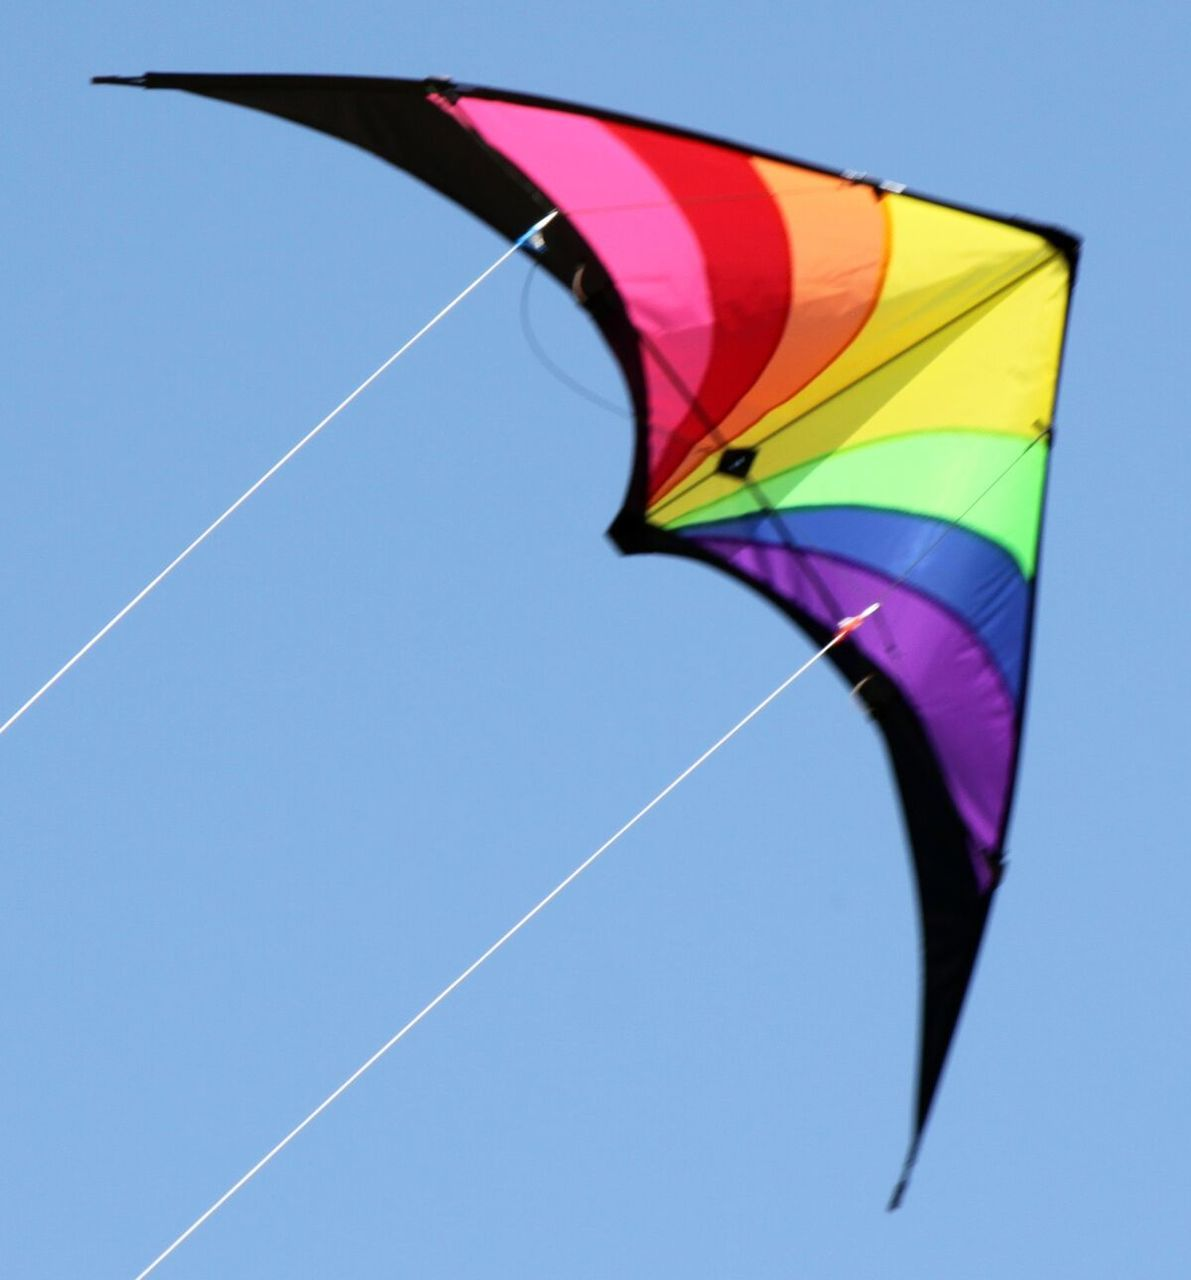 PRISM KITE SWEPT WING 1.37M WINGSPAN